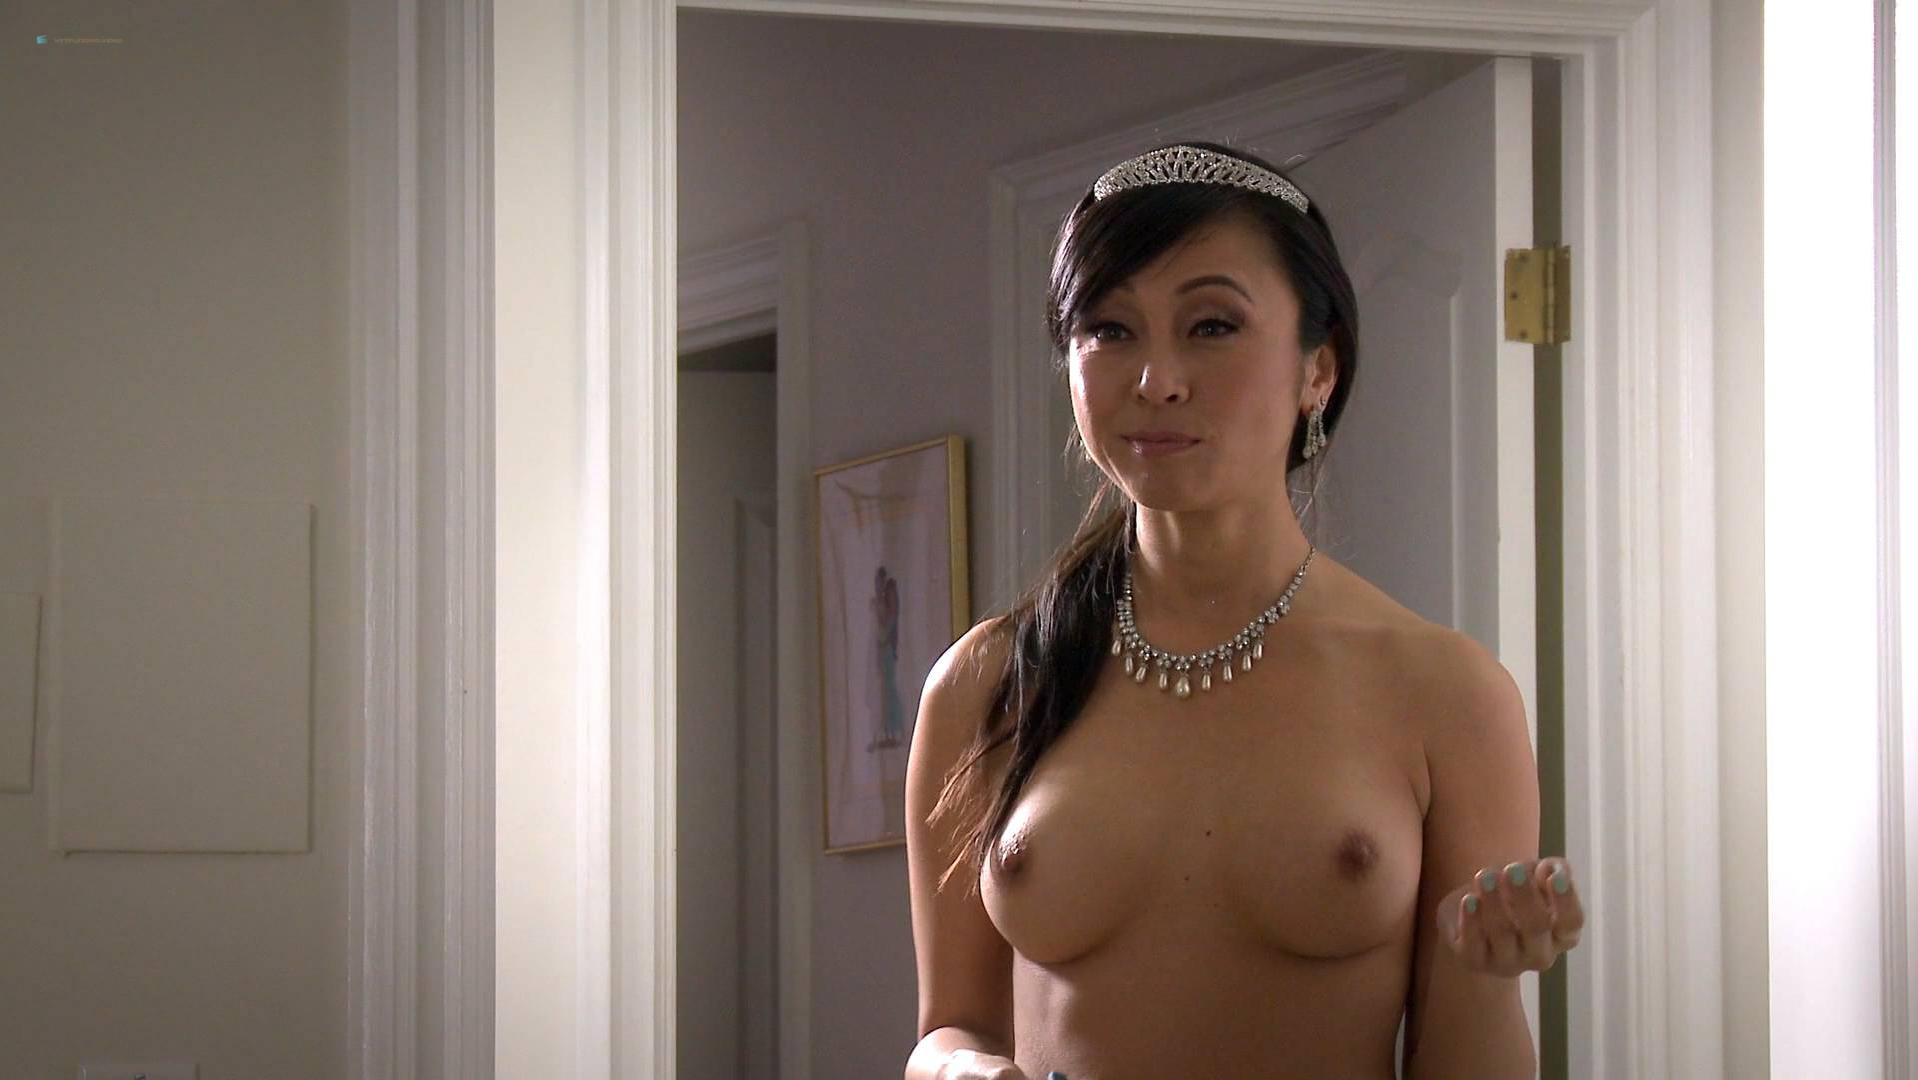 Karlie Montana nude, Christine Nguyen nude, Beverly Lynne nude - Cinderellas Hot Night (2017)